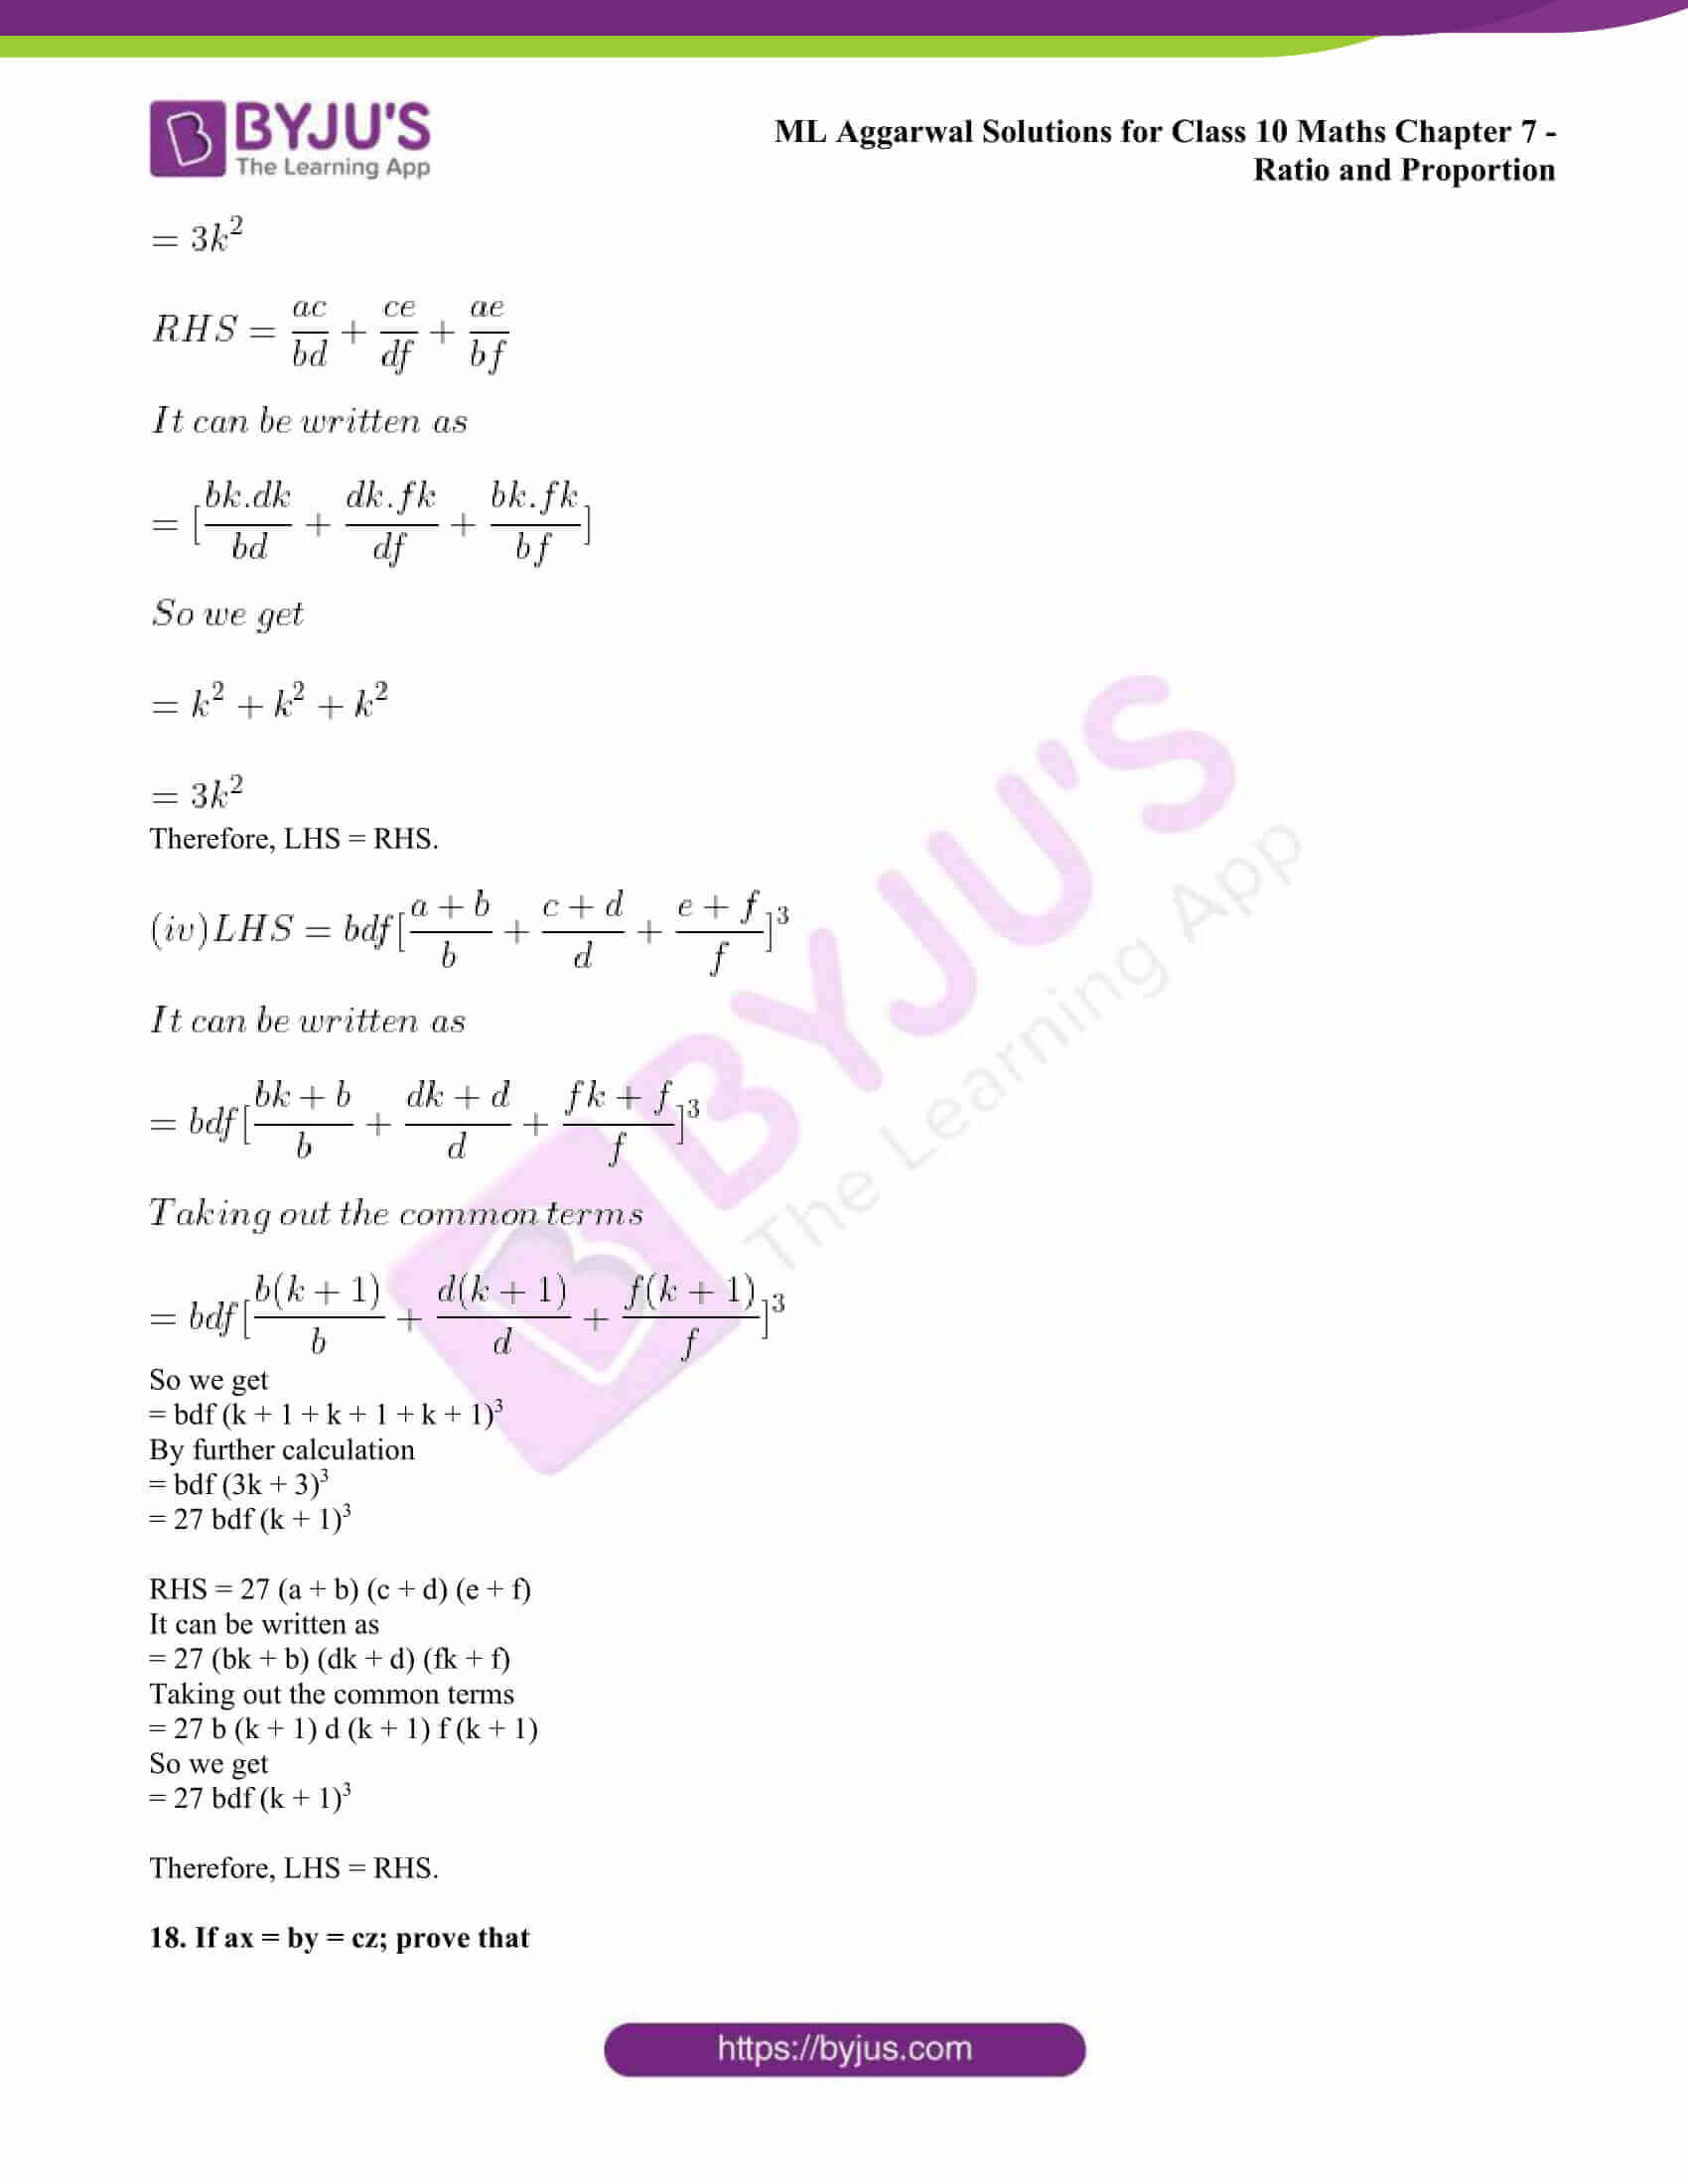 ml aggarwal solutions class 10 maths chapter 7 28